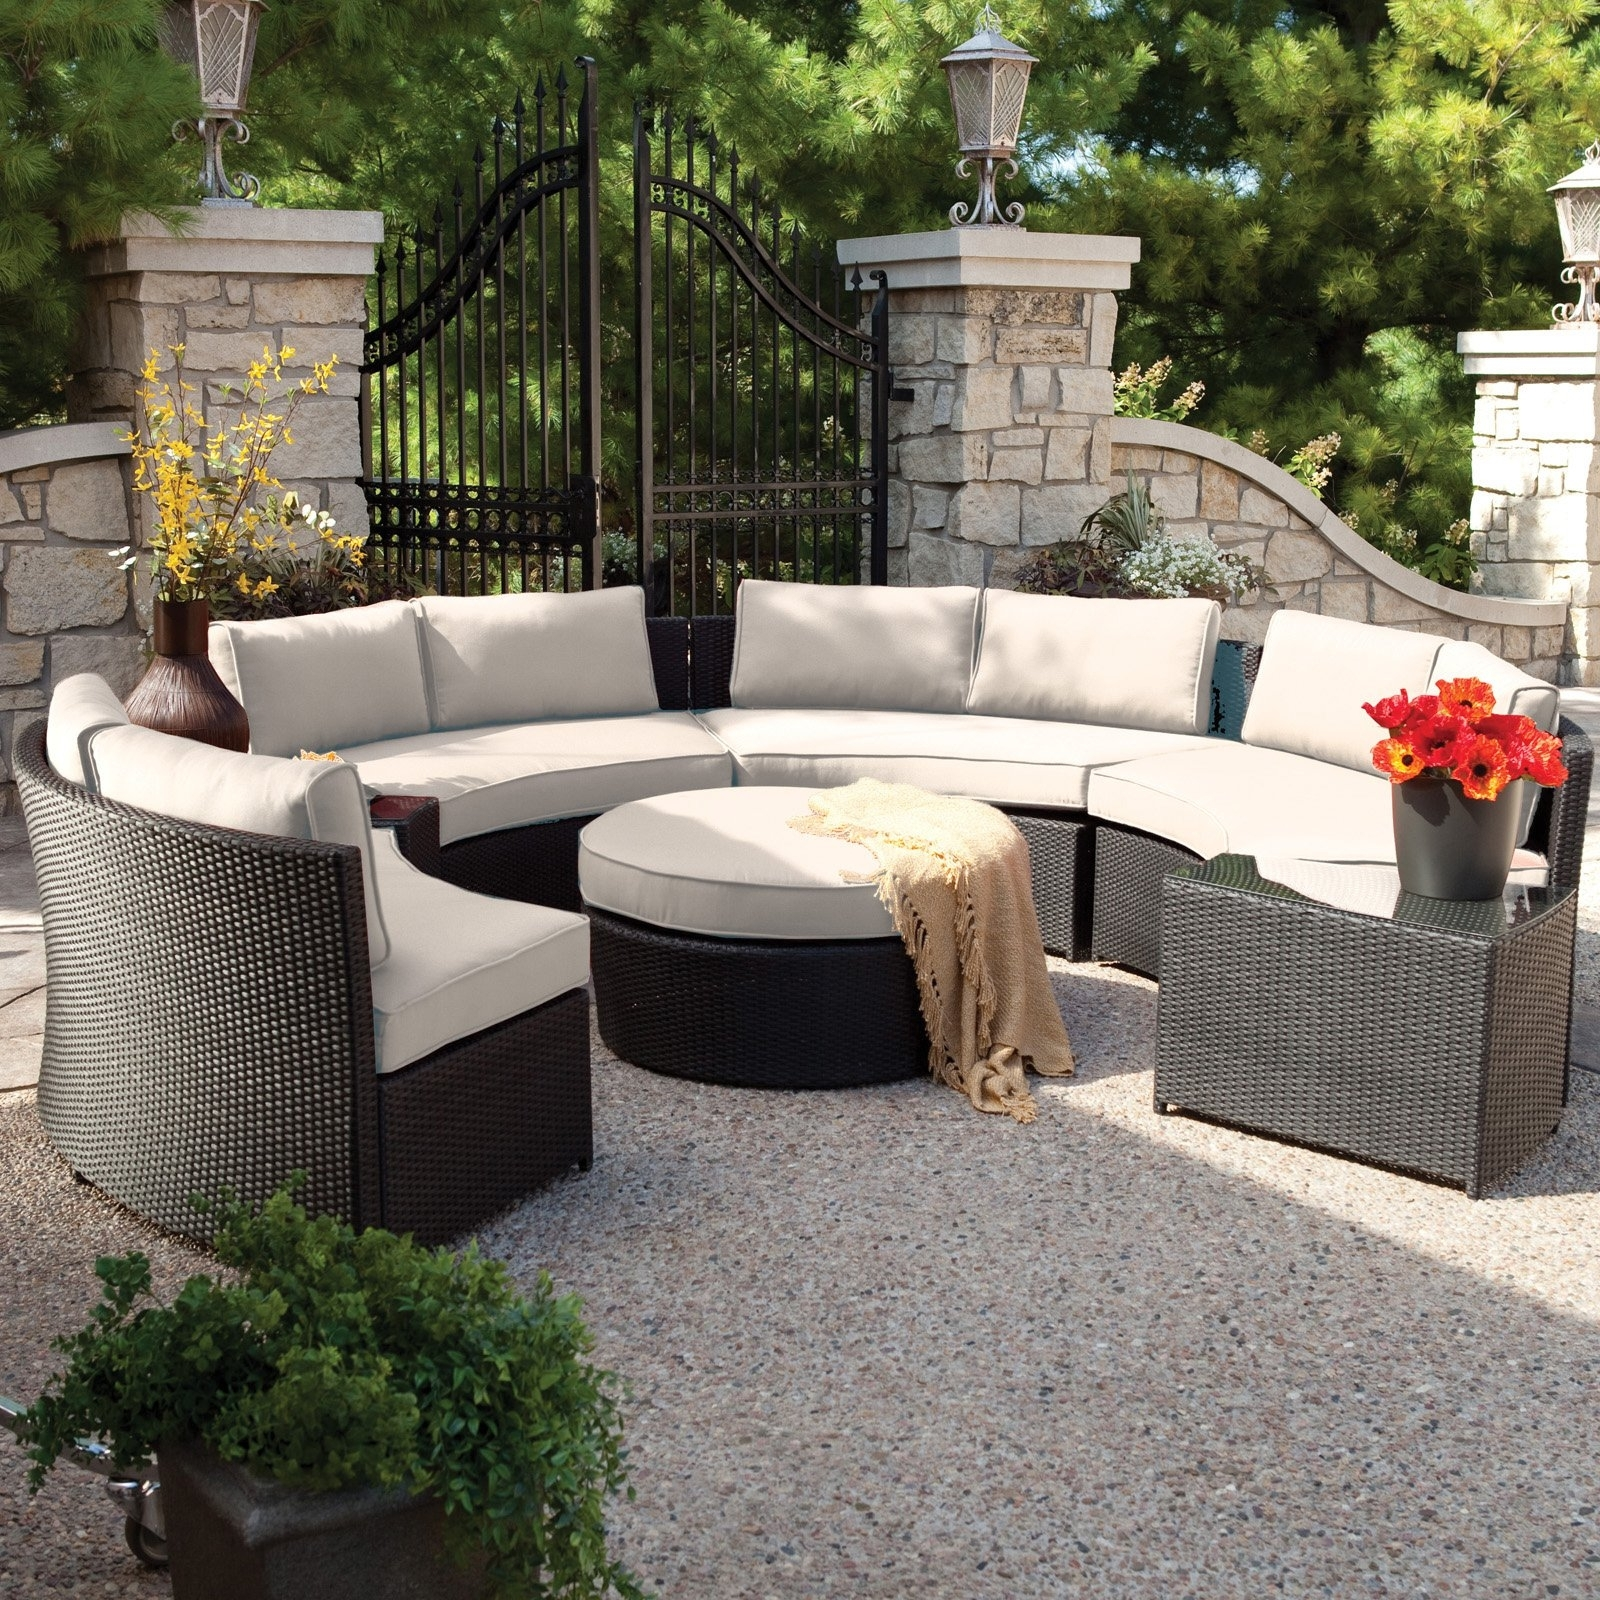 Belham Living Meridian Round Outdoor Wicker Patio Furniture Set With Within Most Up To Date Patio Conversation Sets With Sunbrella Cushions (View 3 of 20)